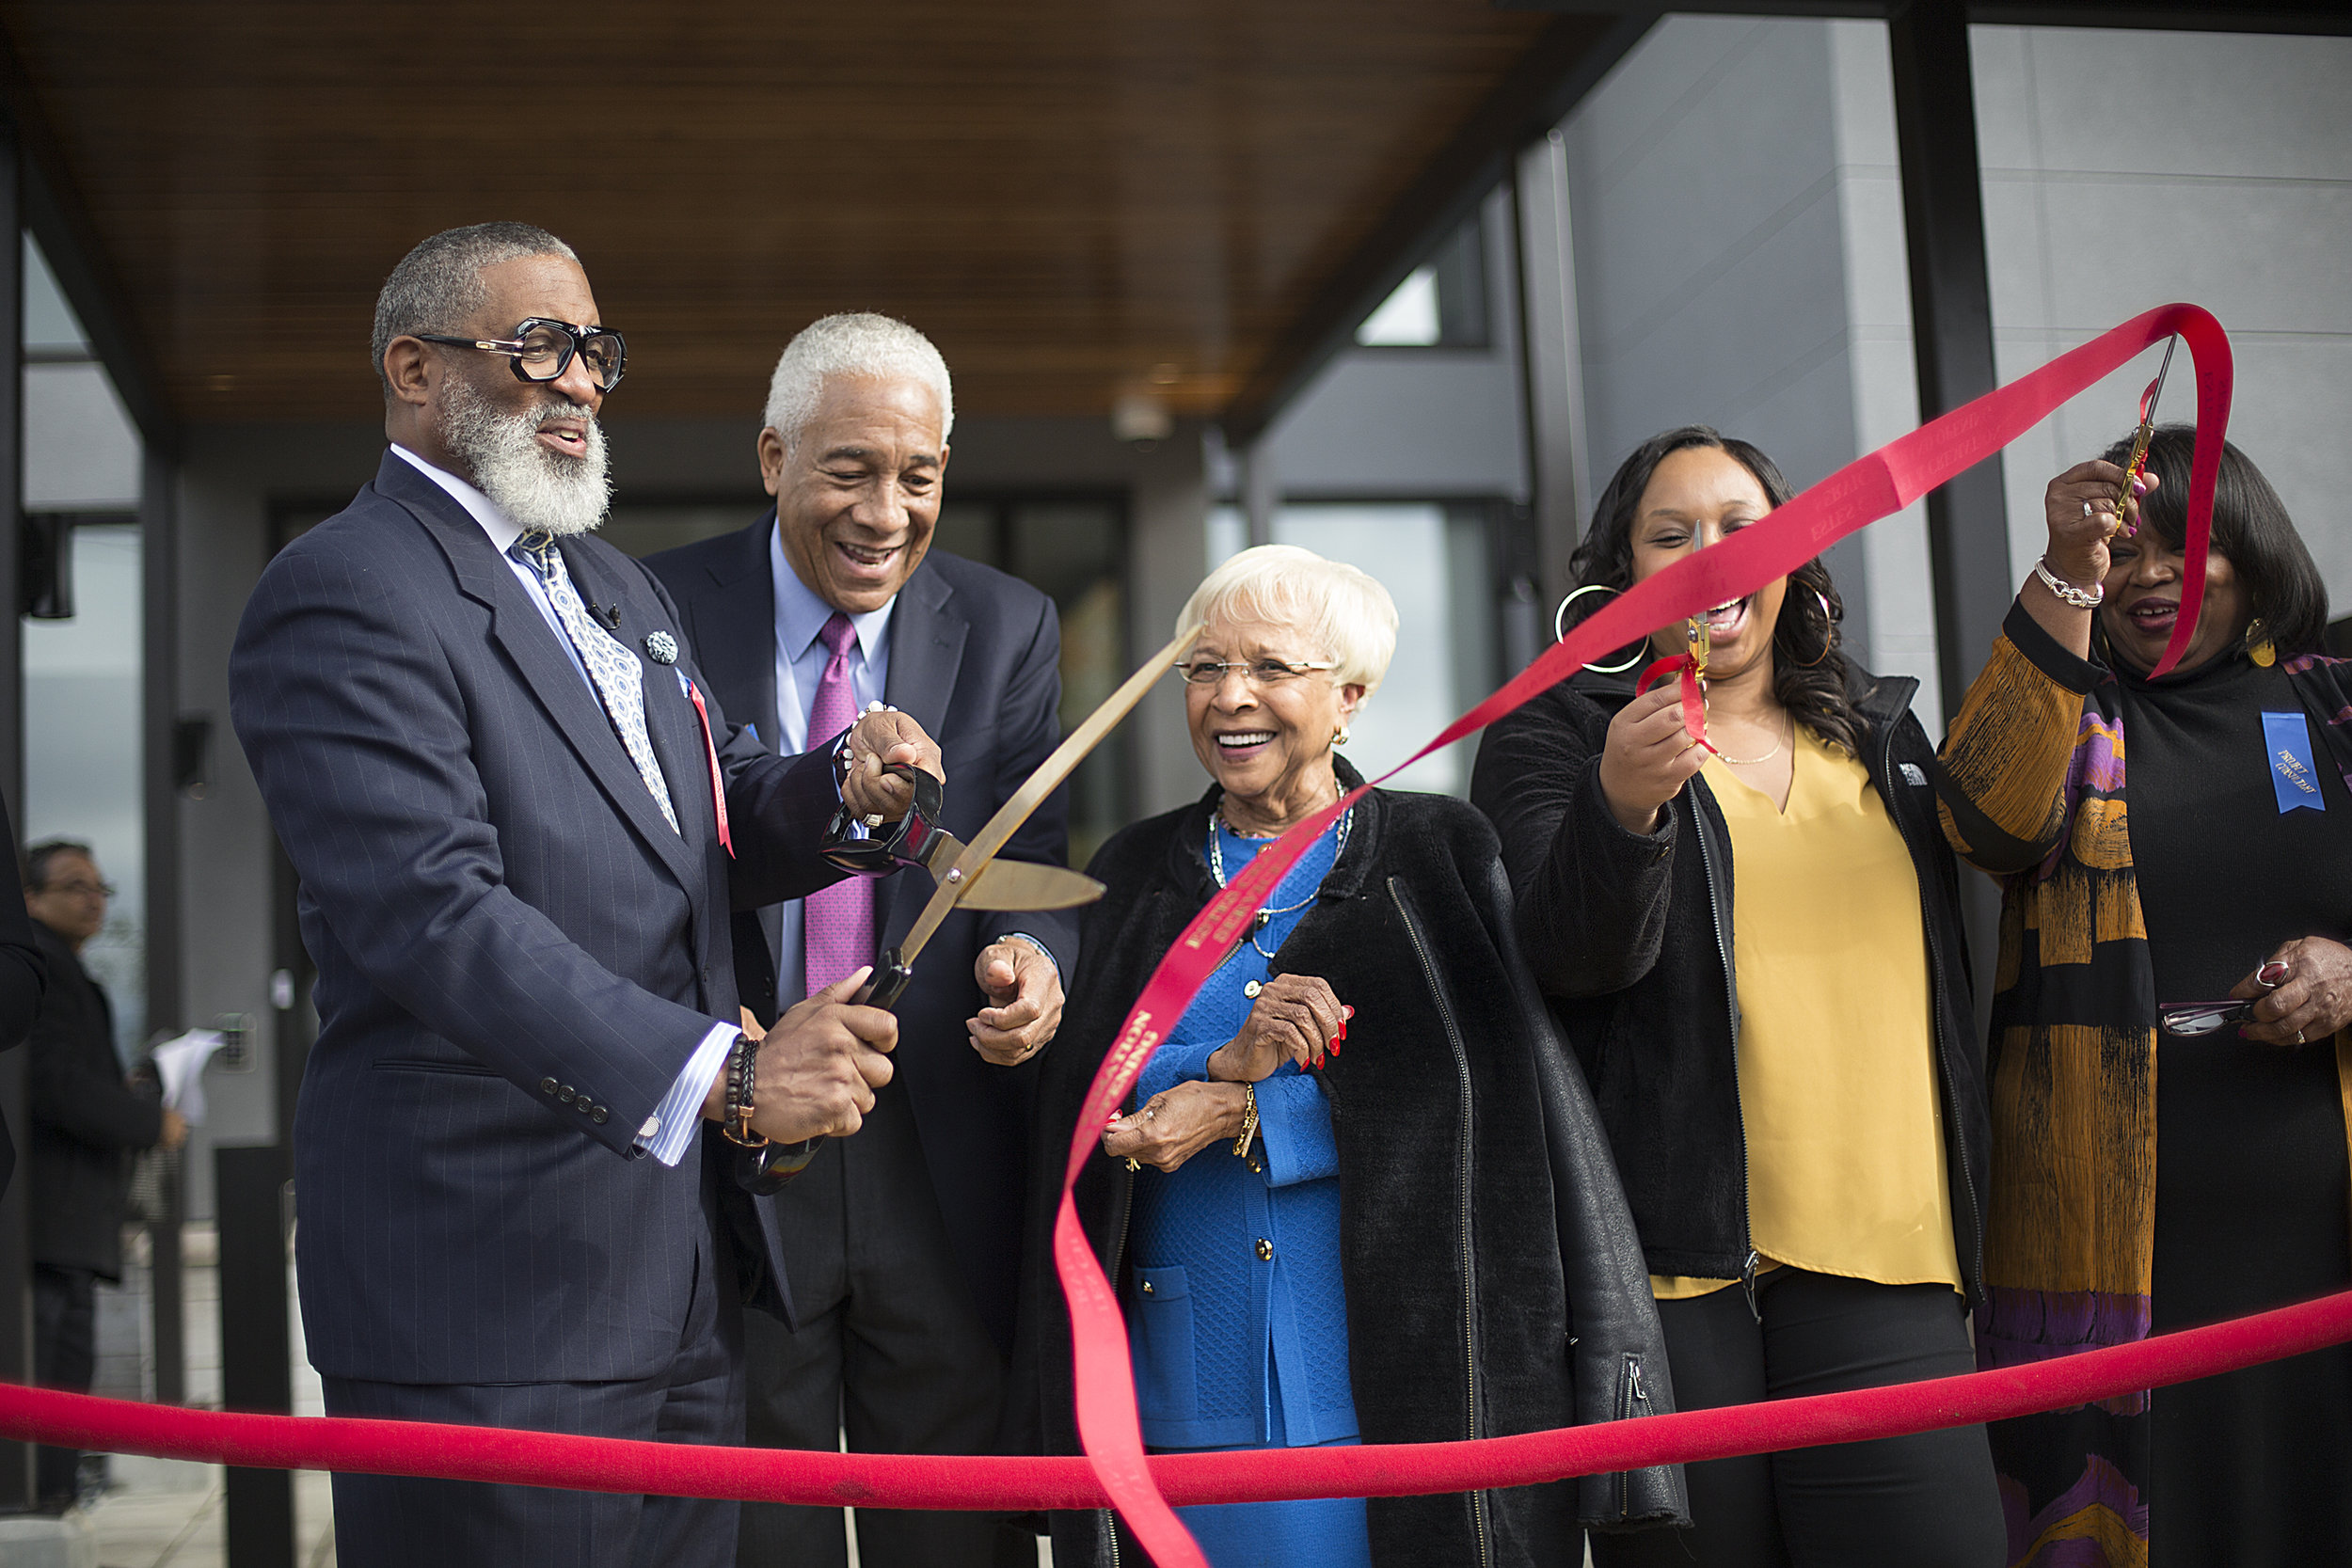 From left, Estes CEO Tracy Wesley, project consultant Bob Ryan, and Estes owner April Estes ceremoniously cut a ribbon at Estes' Opening Celebration on Oct. 14.